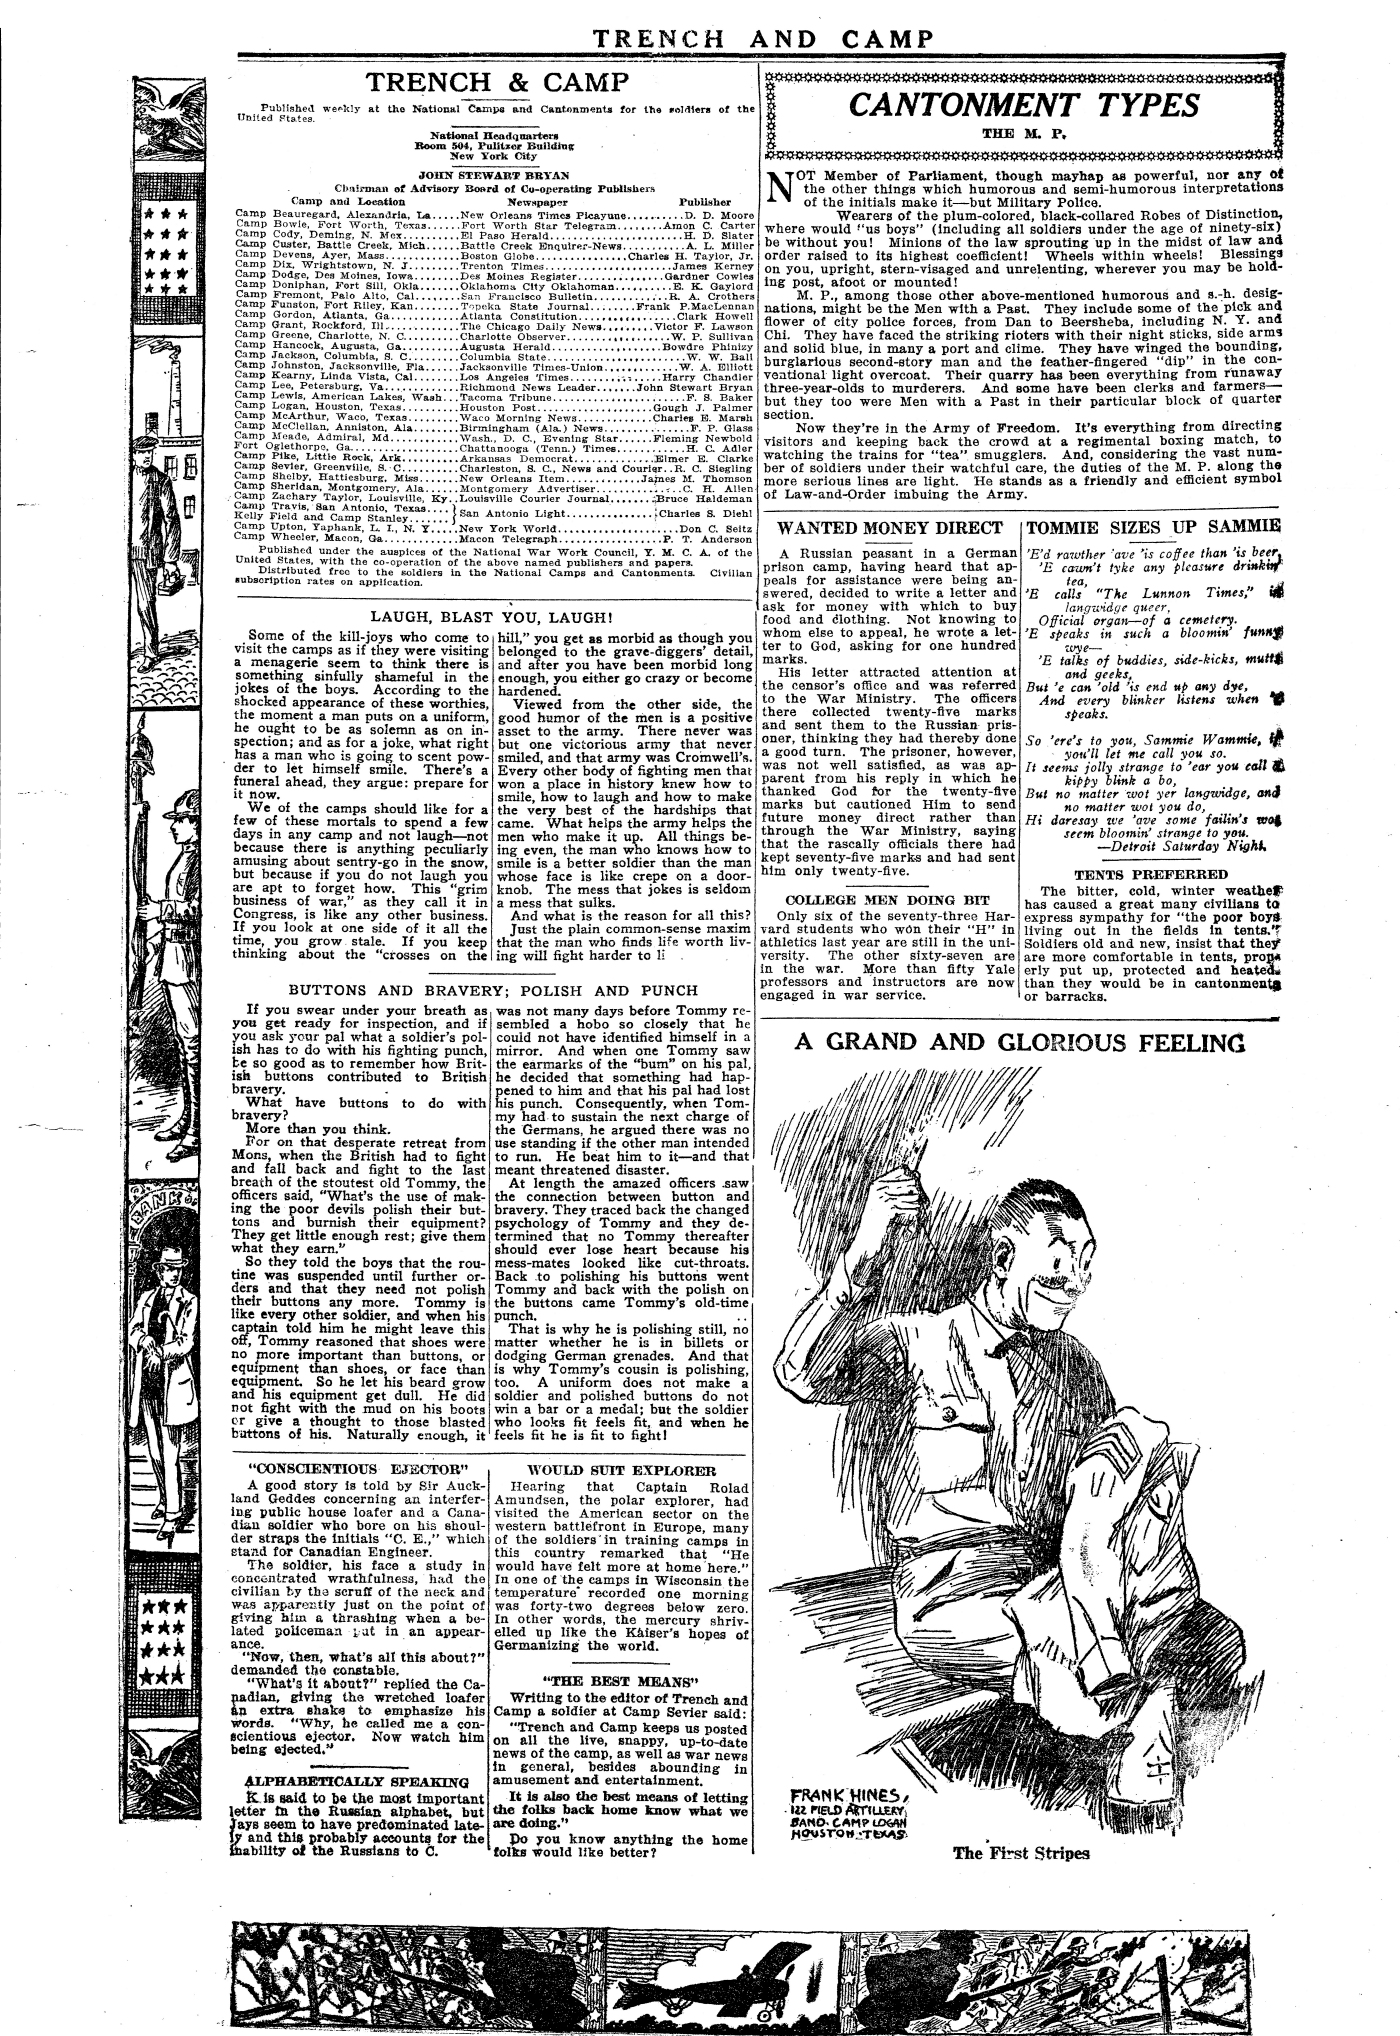 Trench and Camp Newspaper March 7 1918 Page 2